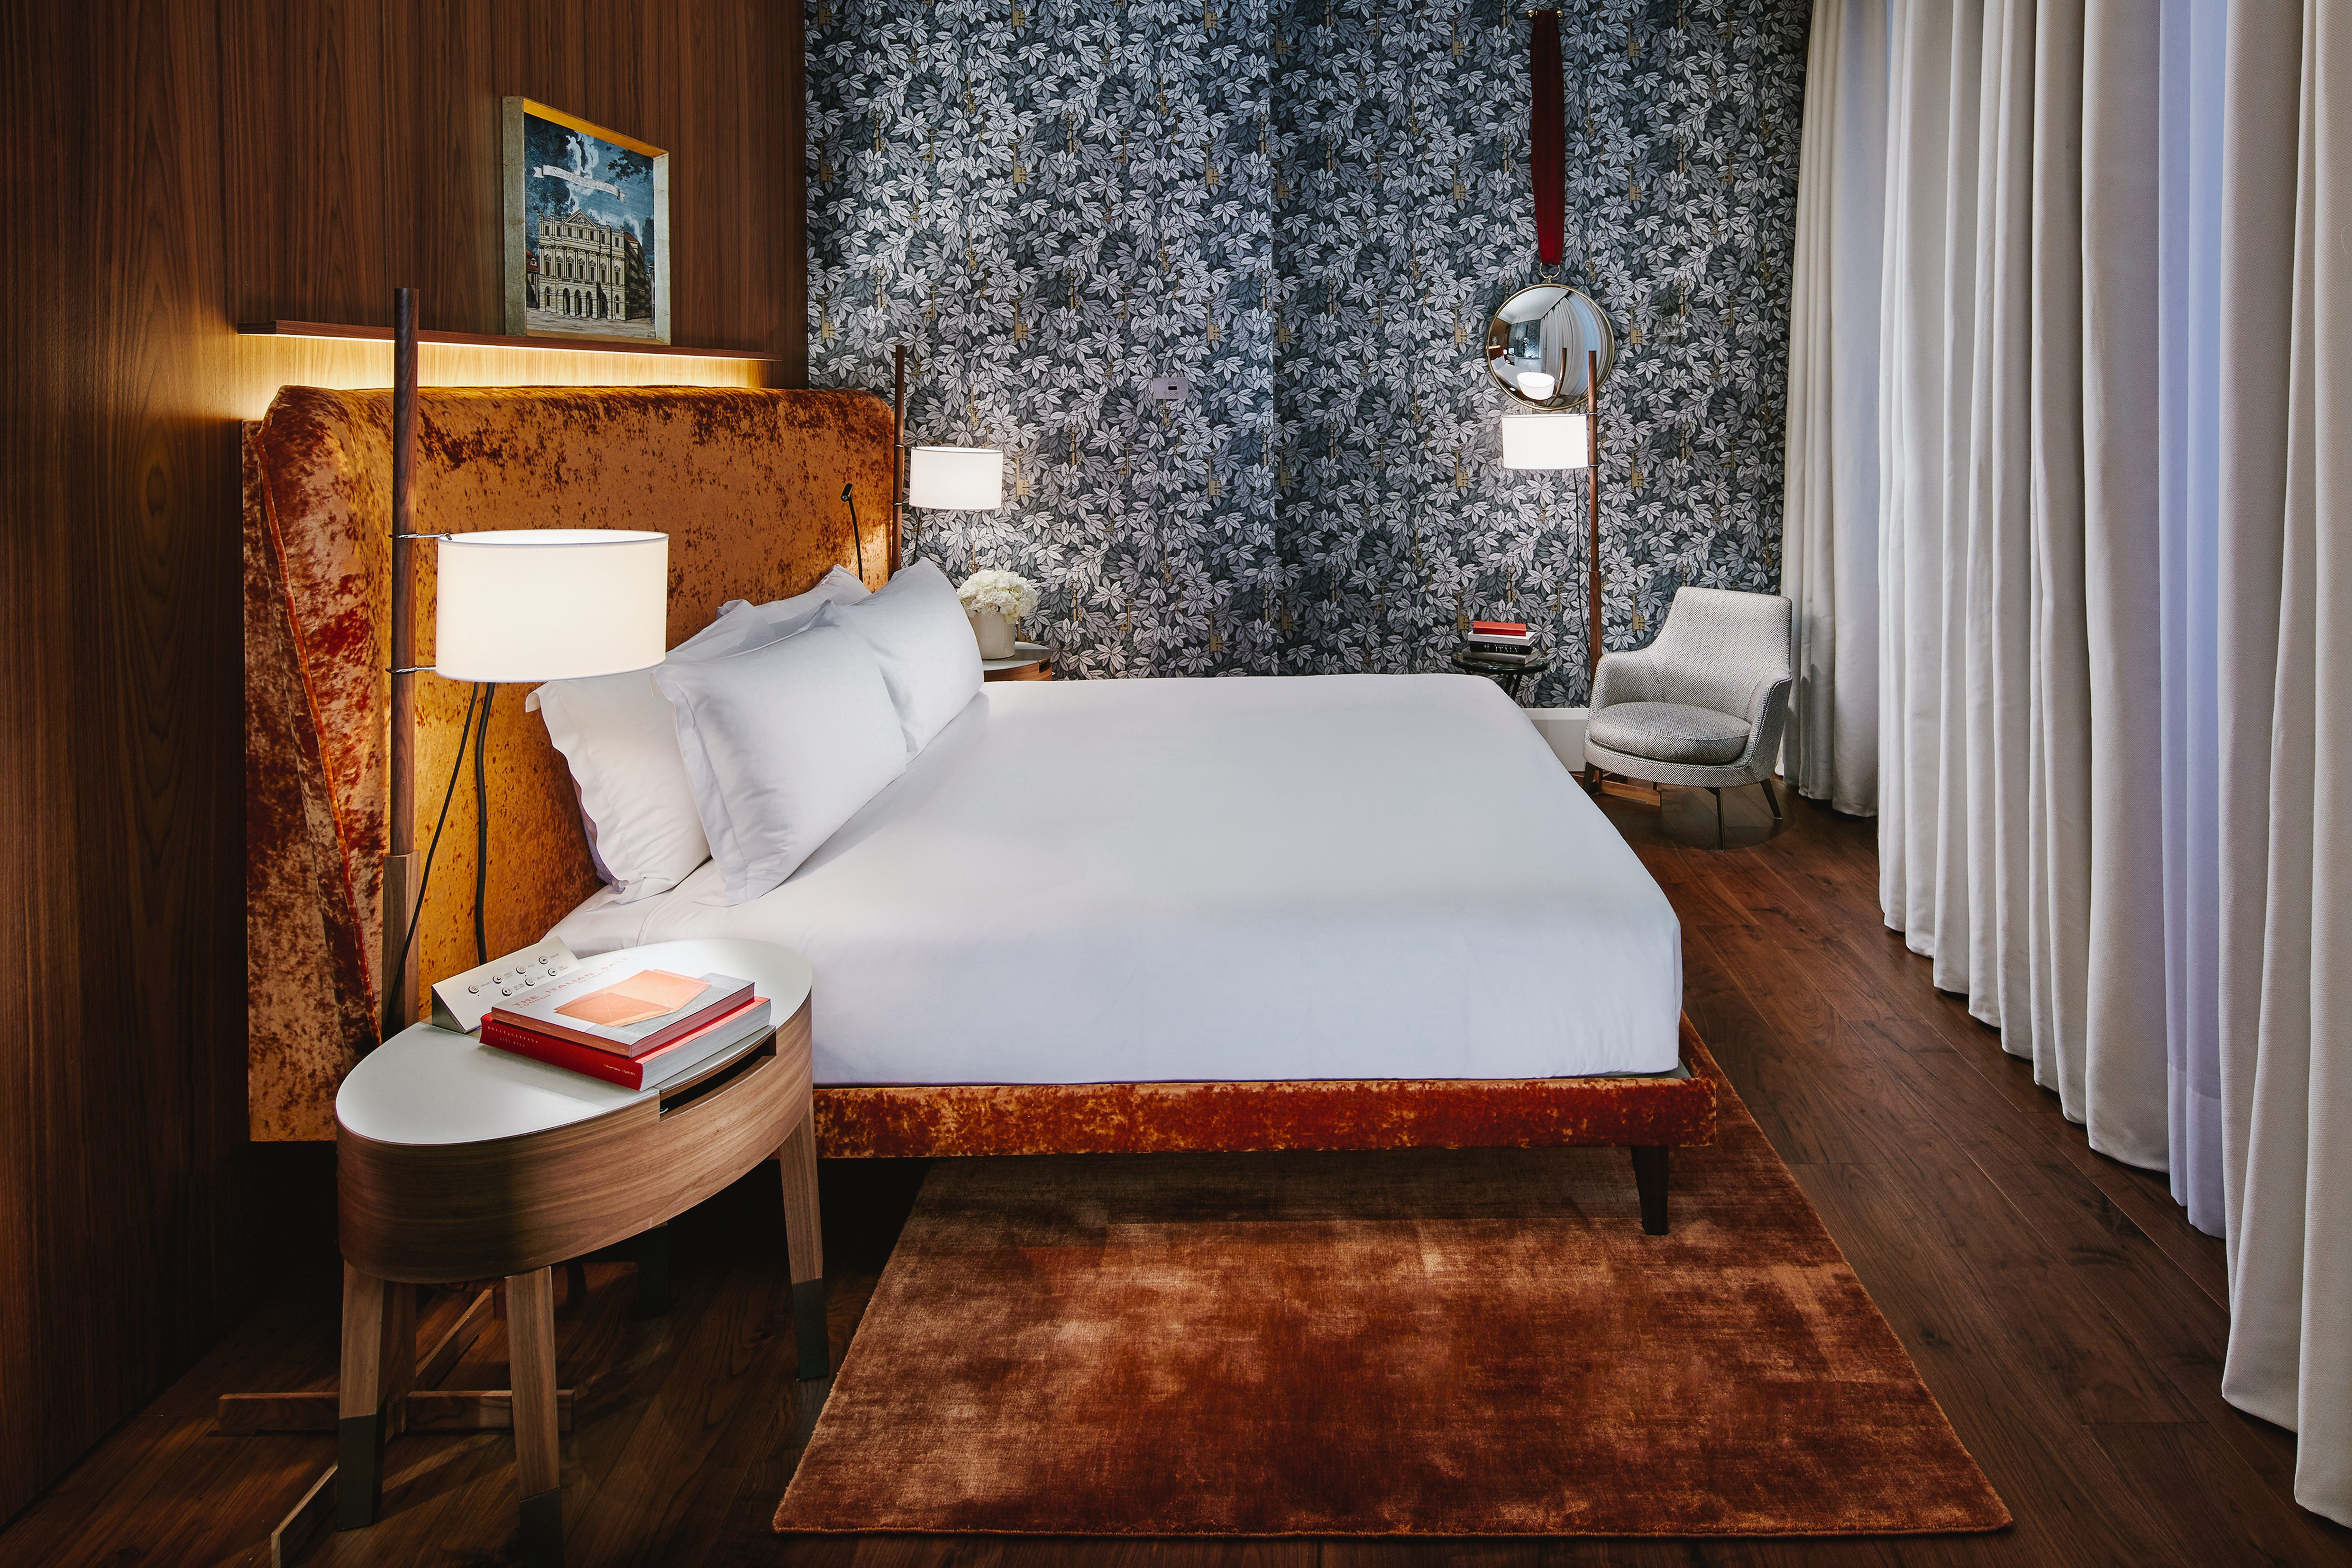 Bedroom suite at MO Milan with its crushed orange velvet headboard and floral wallpaper